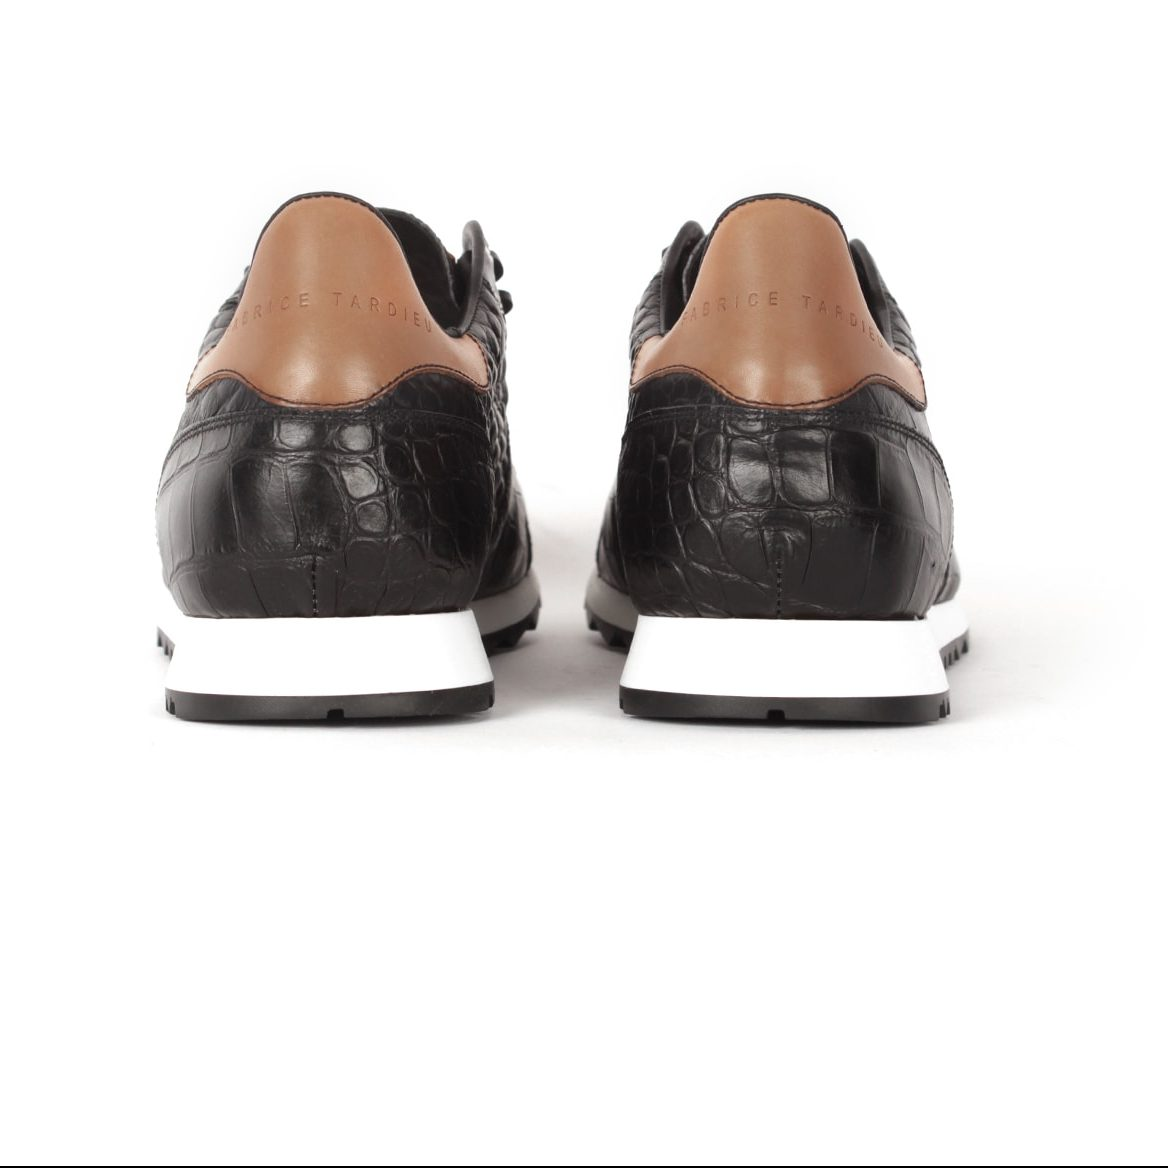 Handcrafted black leather runners for men